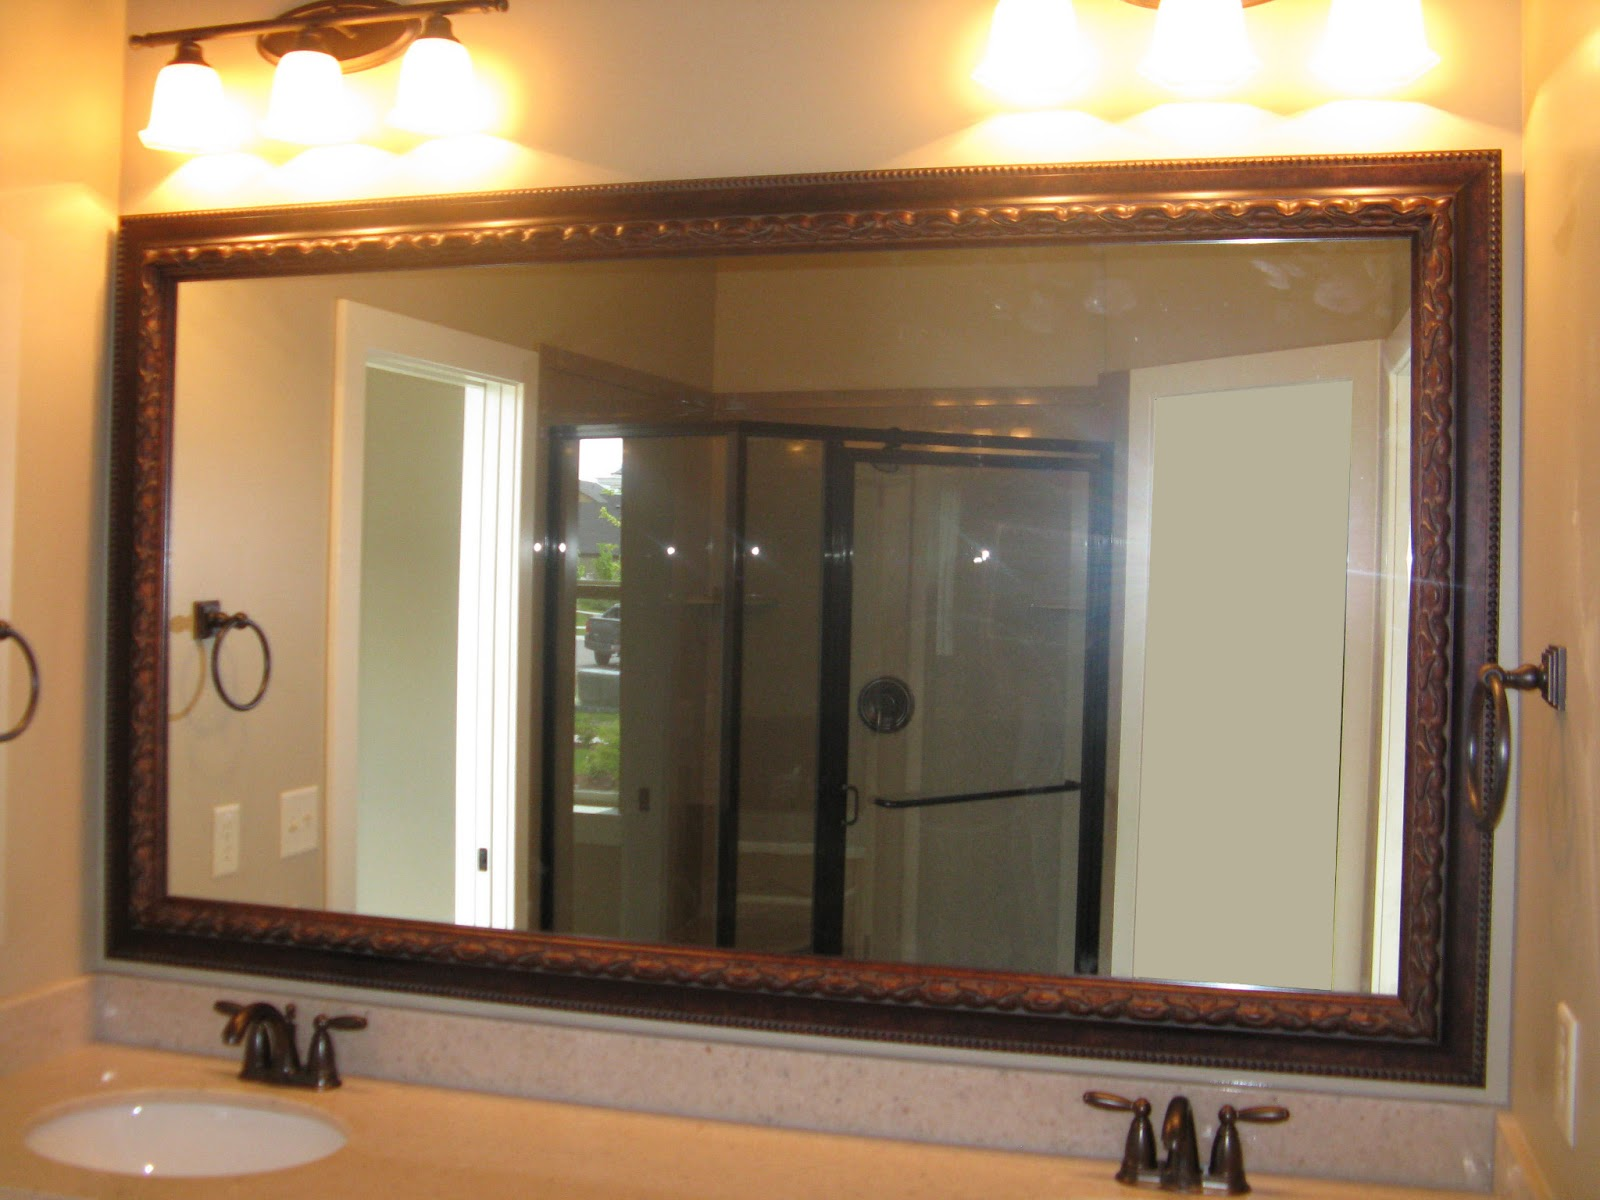 bathroom mirror frame kit - 28 images - mirror frame kit ...